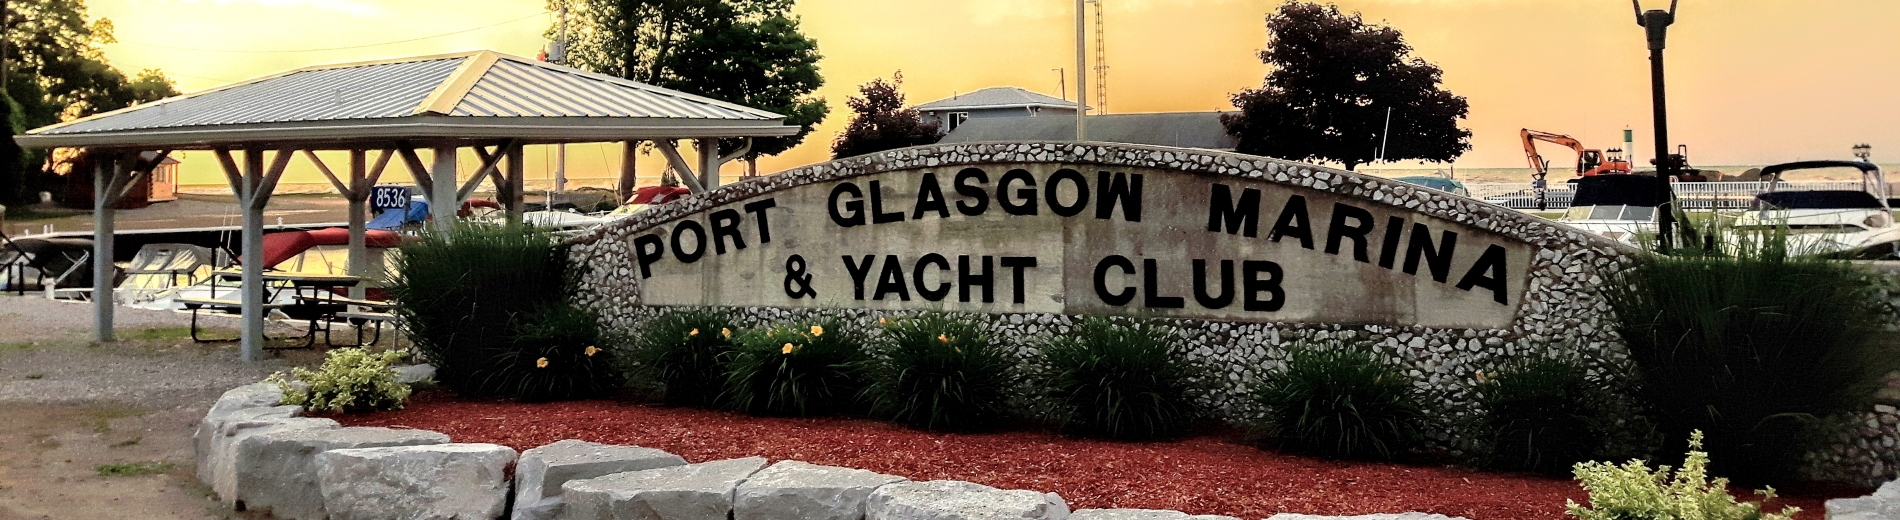 Port Glasgow Marina sign